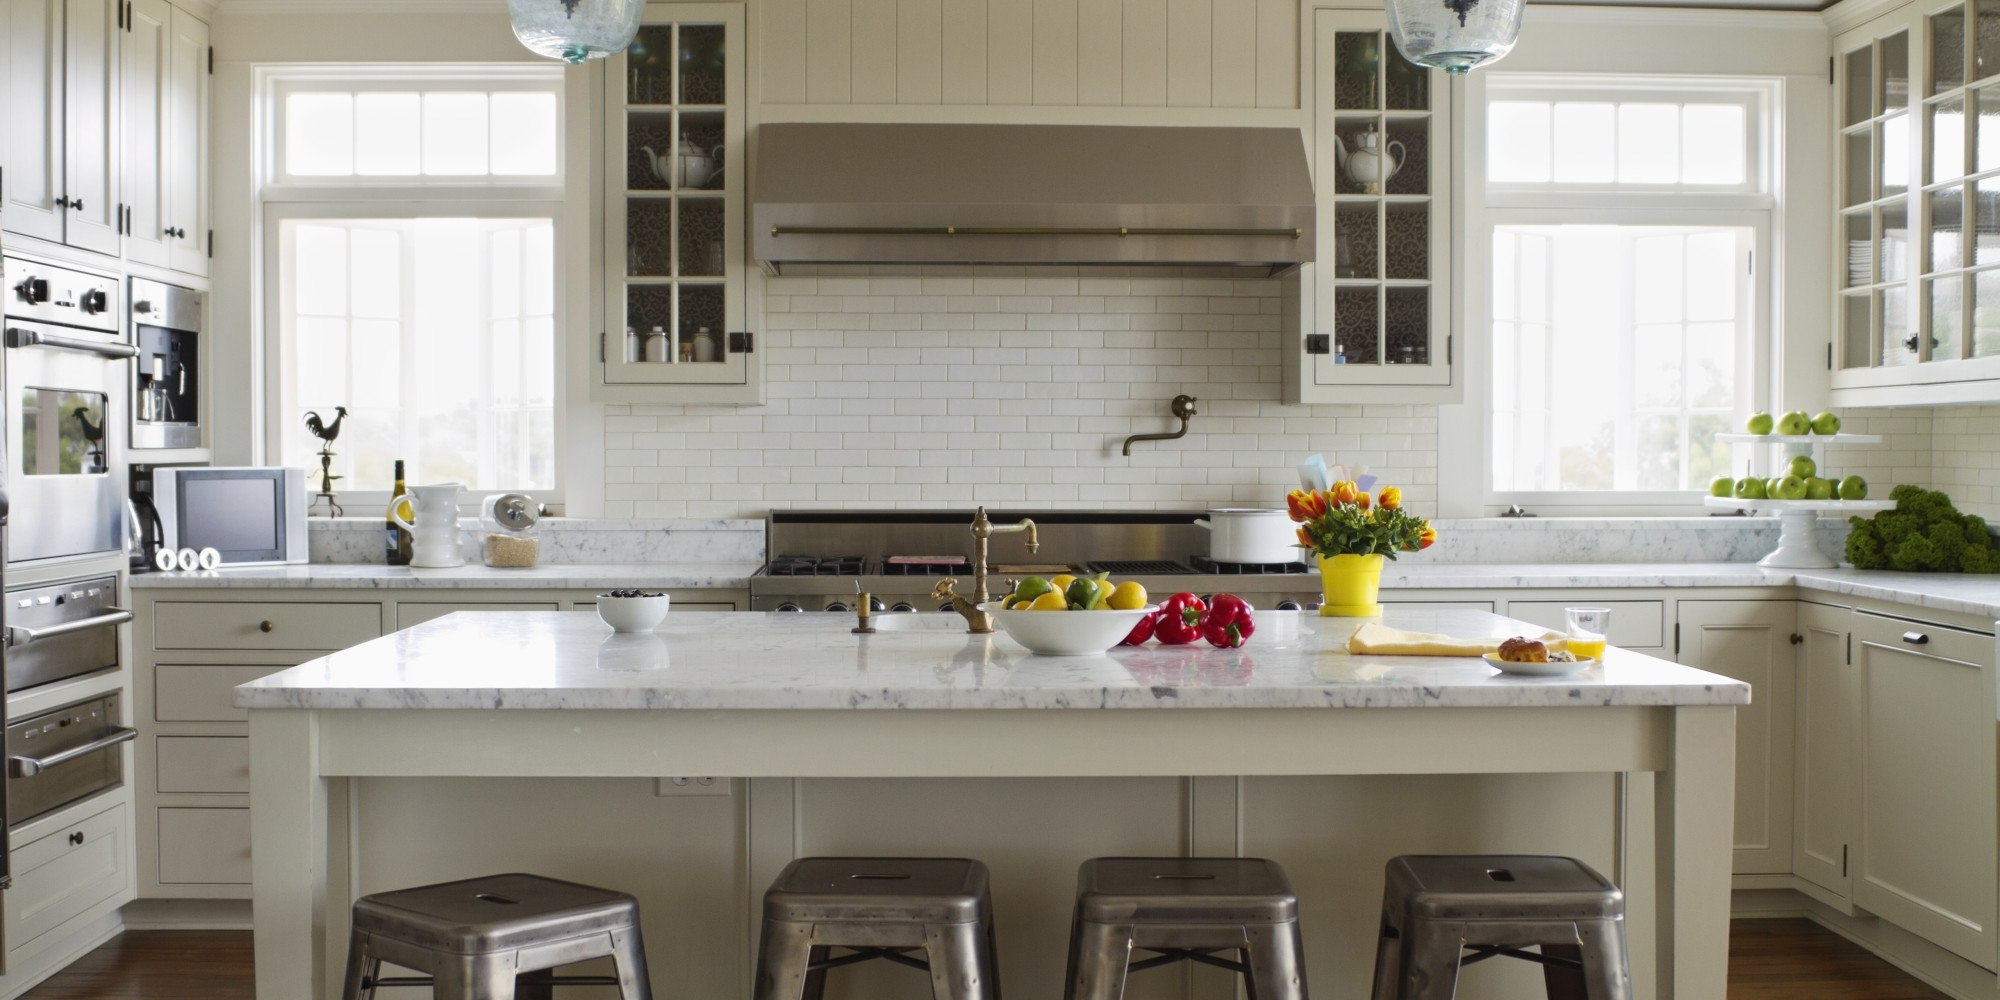 Permalink to Current Kitchen Cabinet Trends 2014